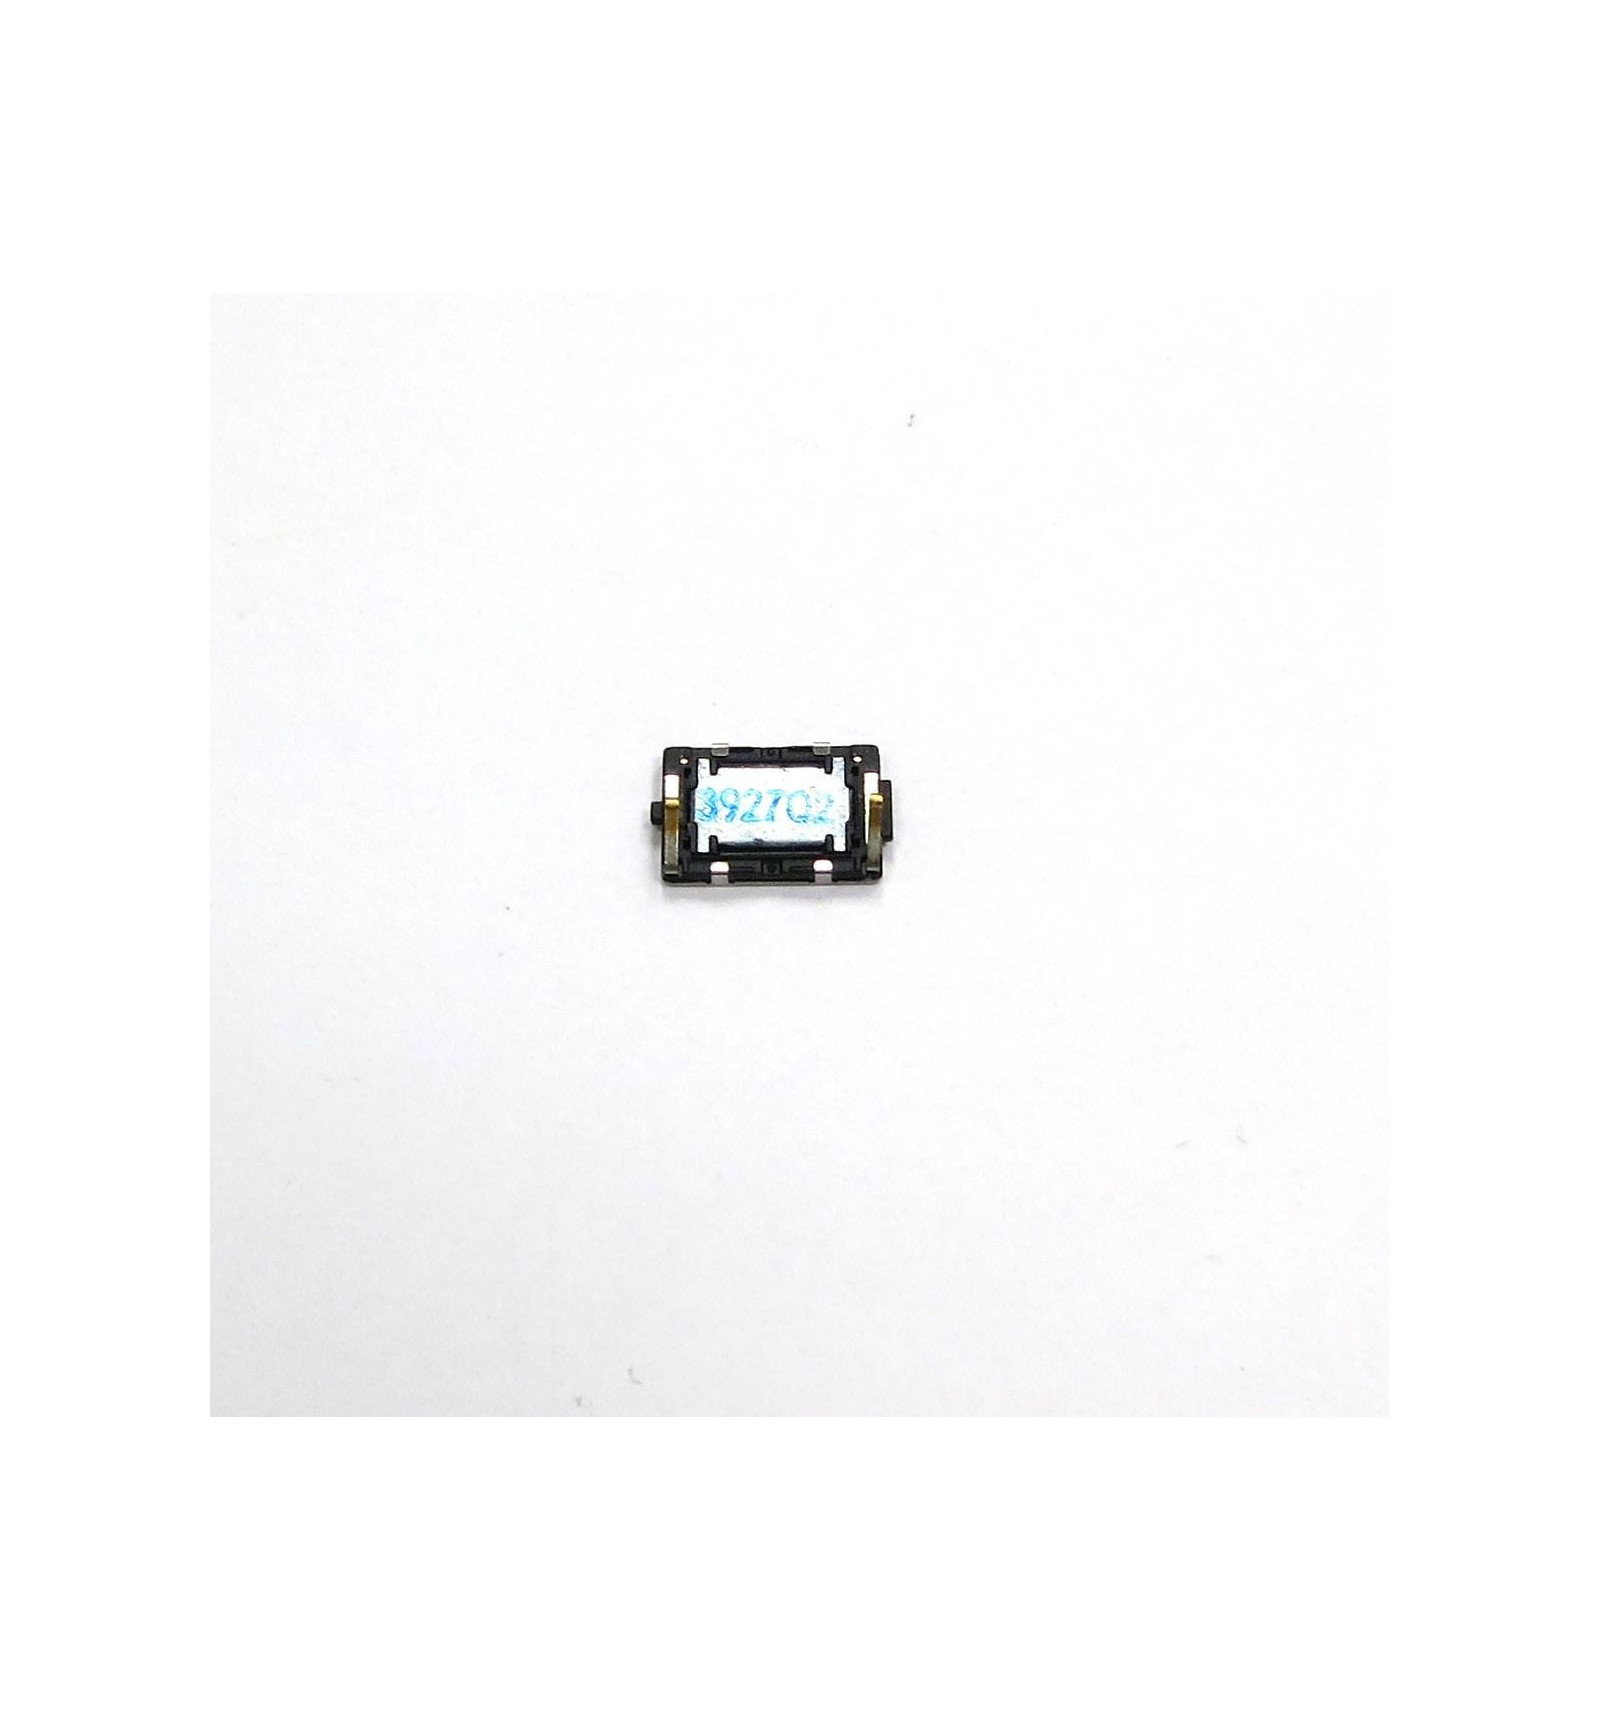 Earspeaker replacement for Sony Xperia Z1 compact D5503